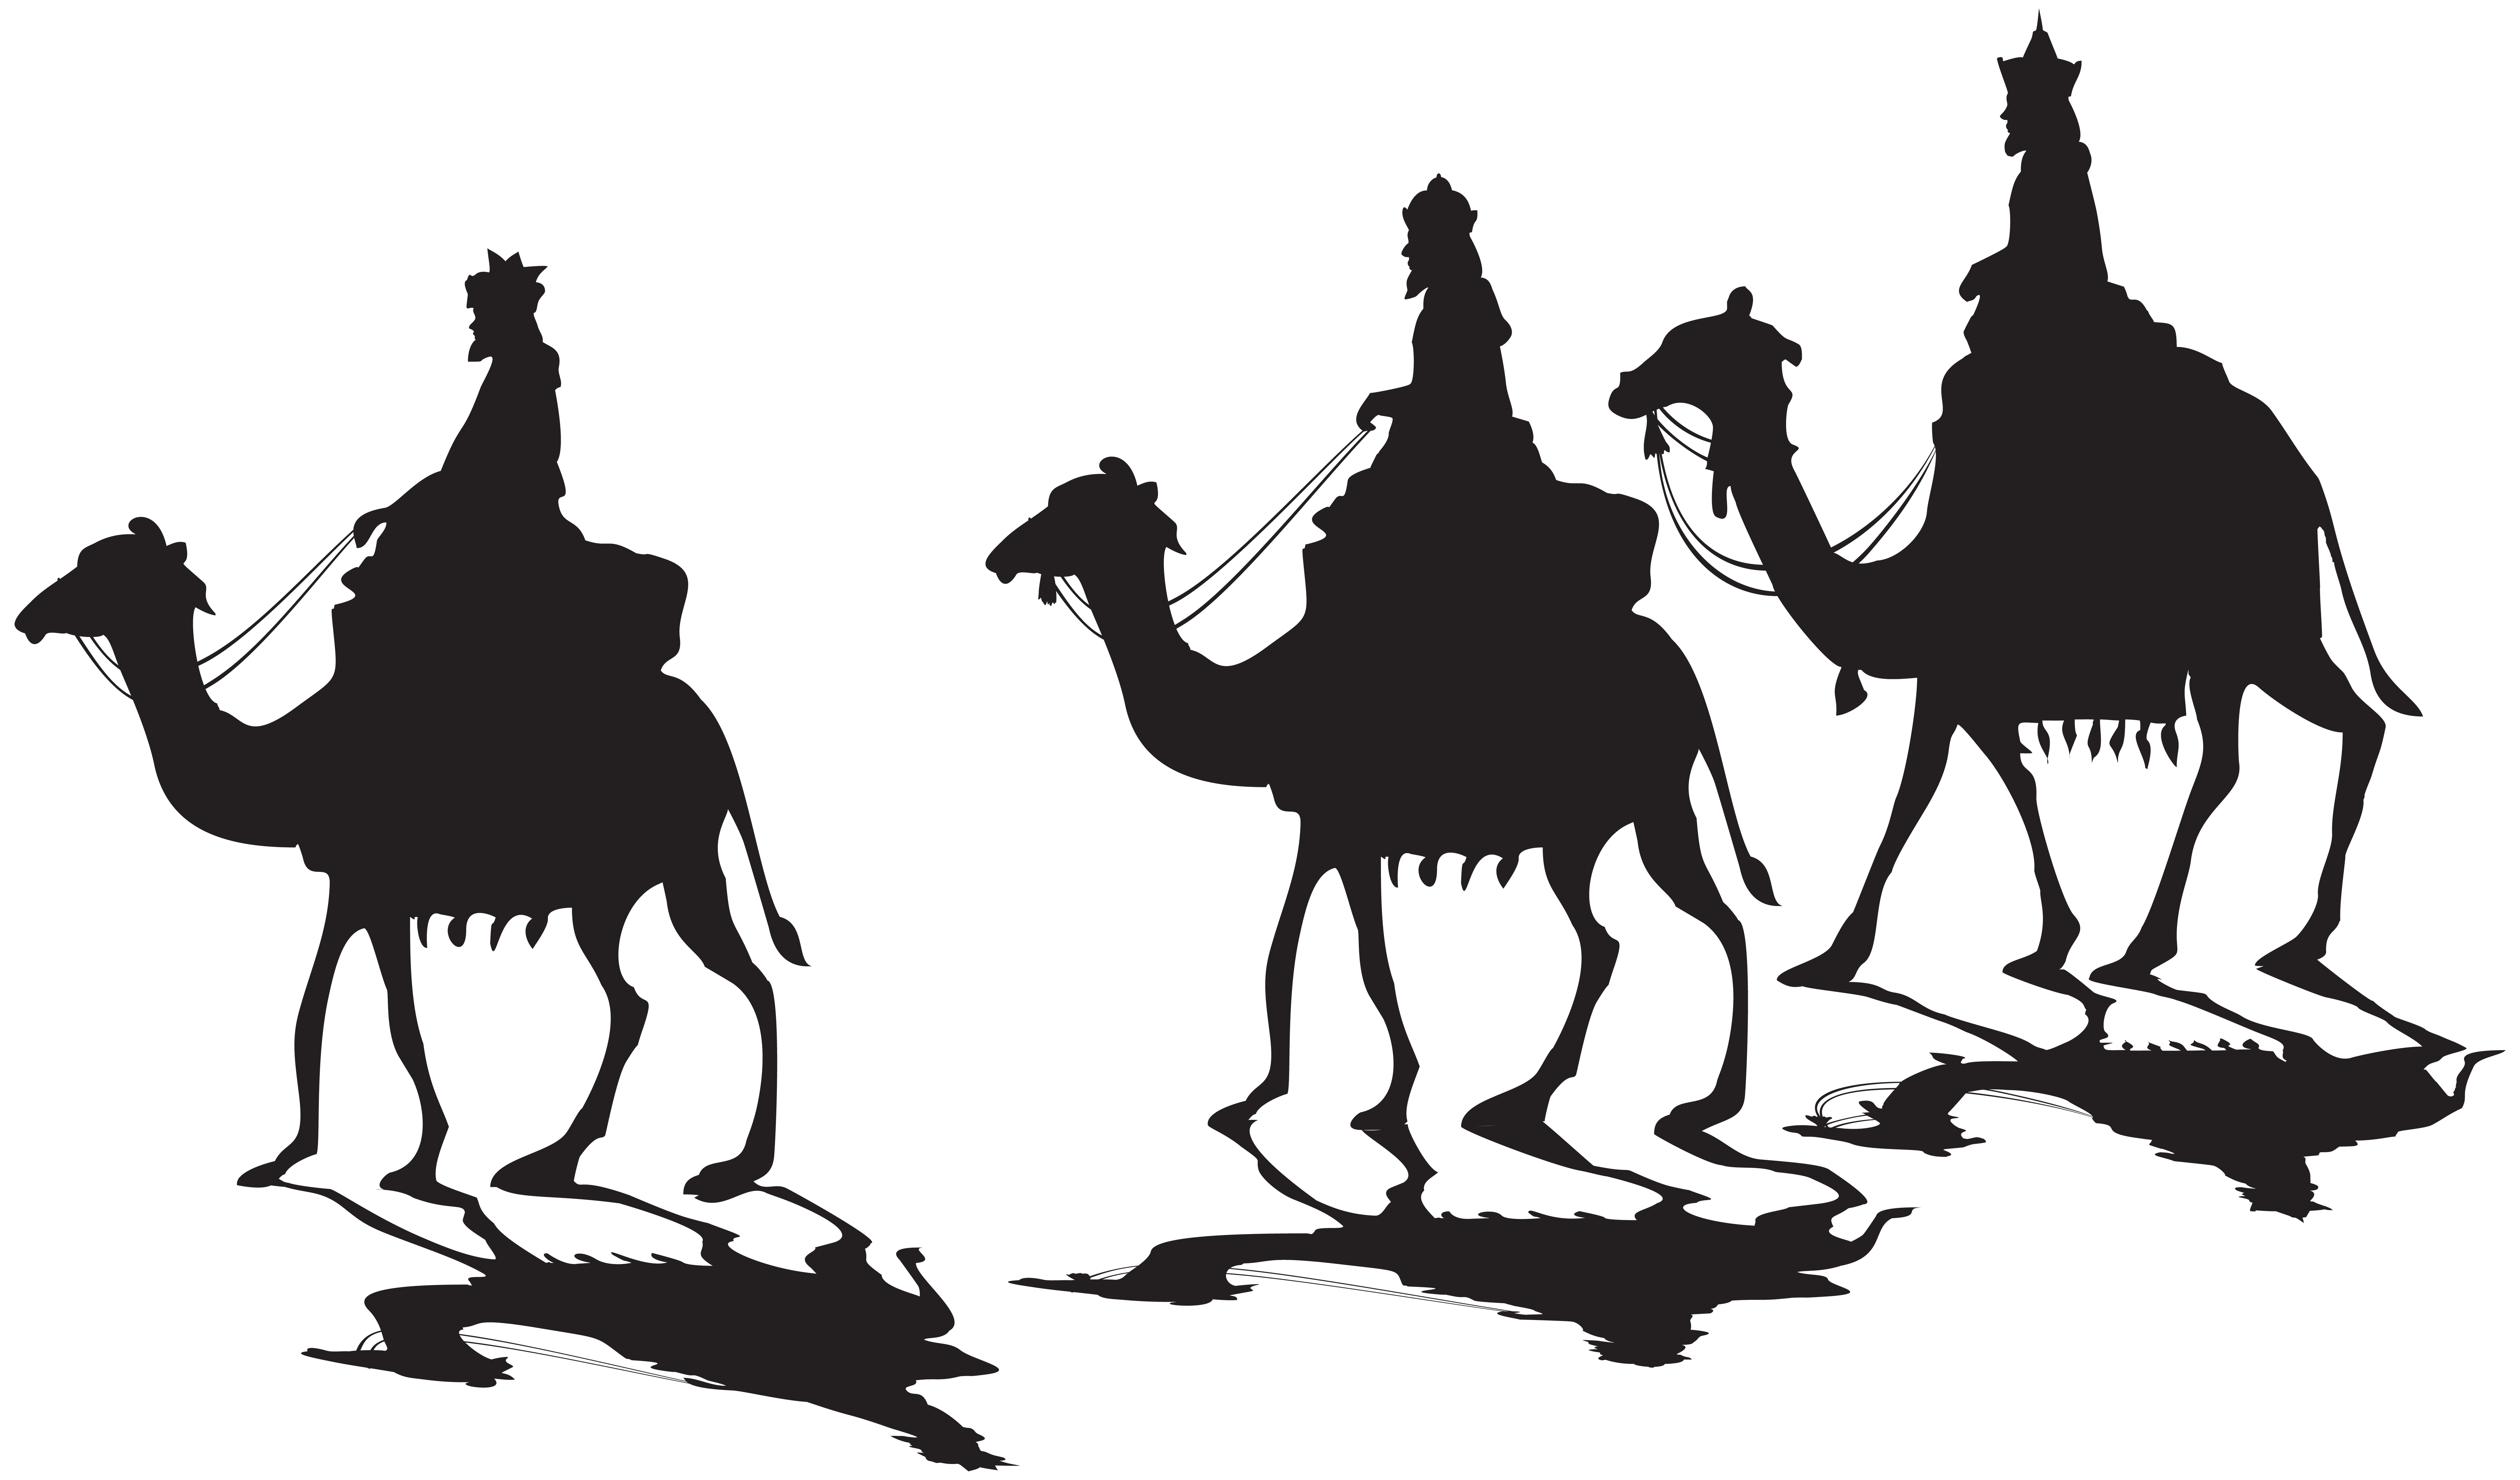 Silhouette png clip art. King clipart three kings